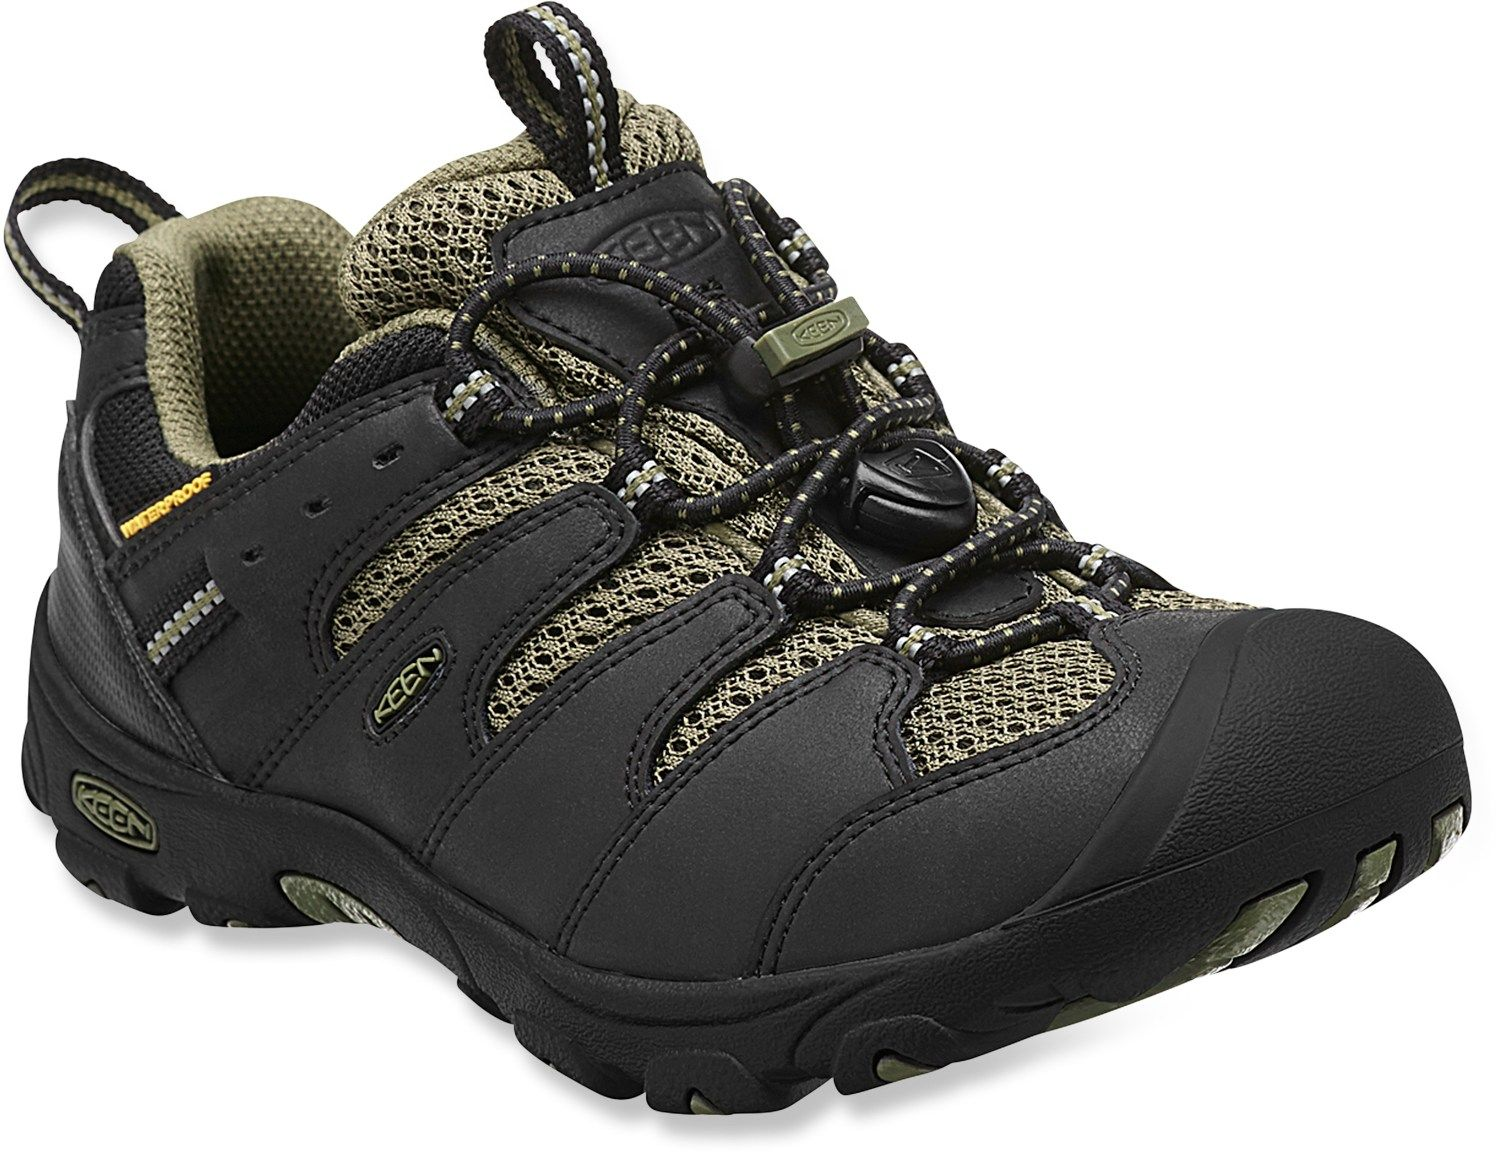 Keen Unisex Koven Low Waterproof Hiking Shoes - Kids'